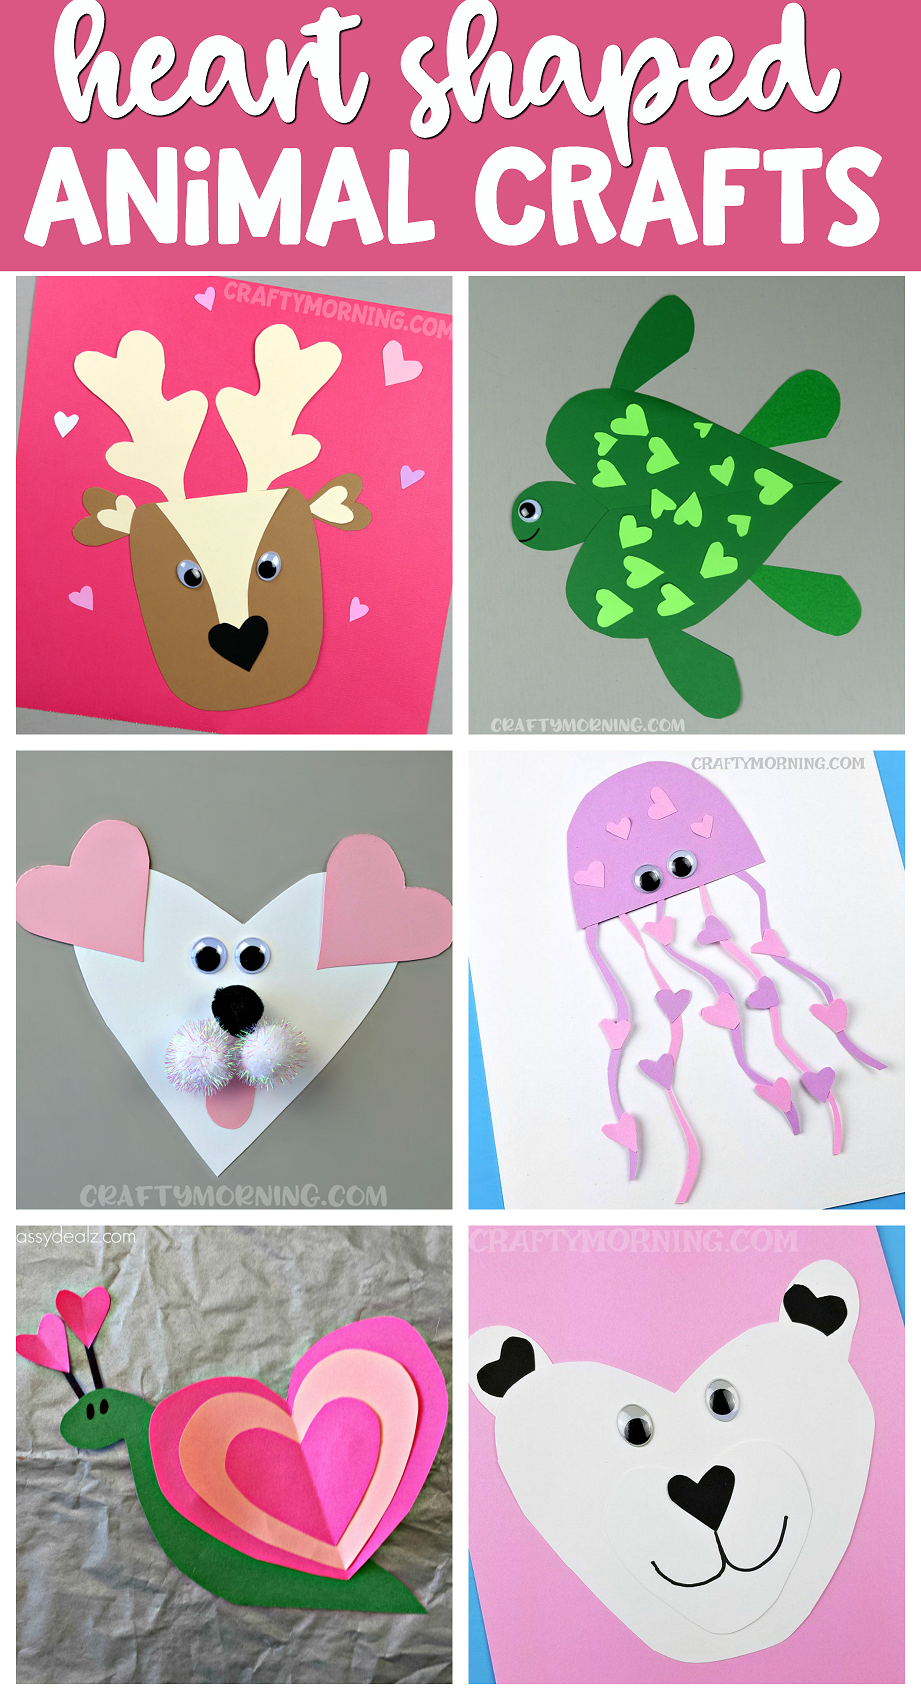 Heart Shaped Crafts : heart, shaped, crafts, Valentine's, Heart, Shaped, Animal, Crafts, Valentine, Kids,, February, Crafts,, Valentines